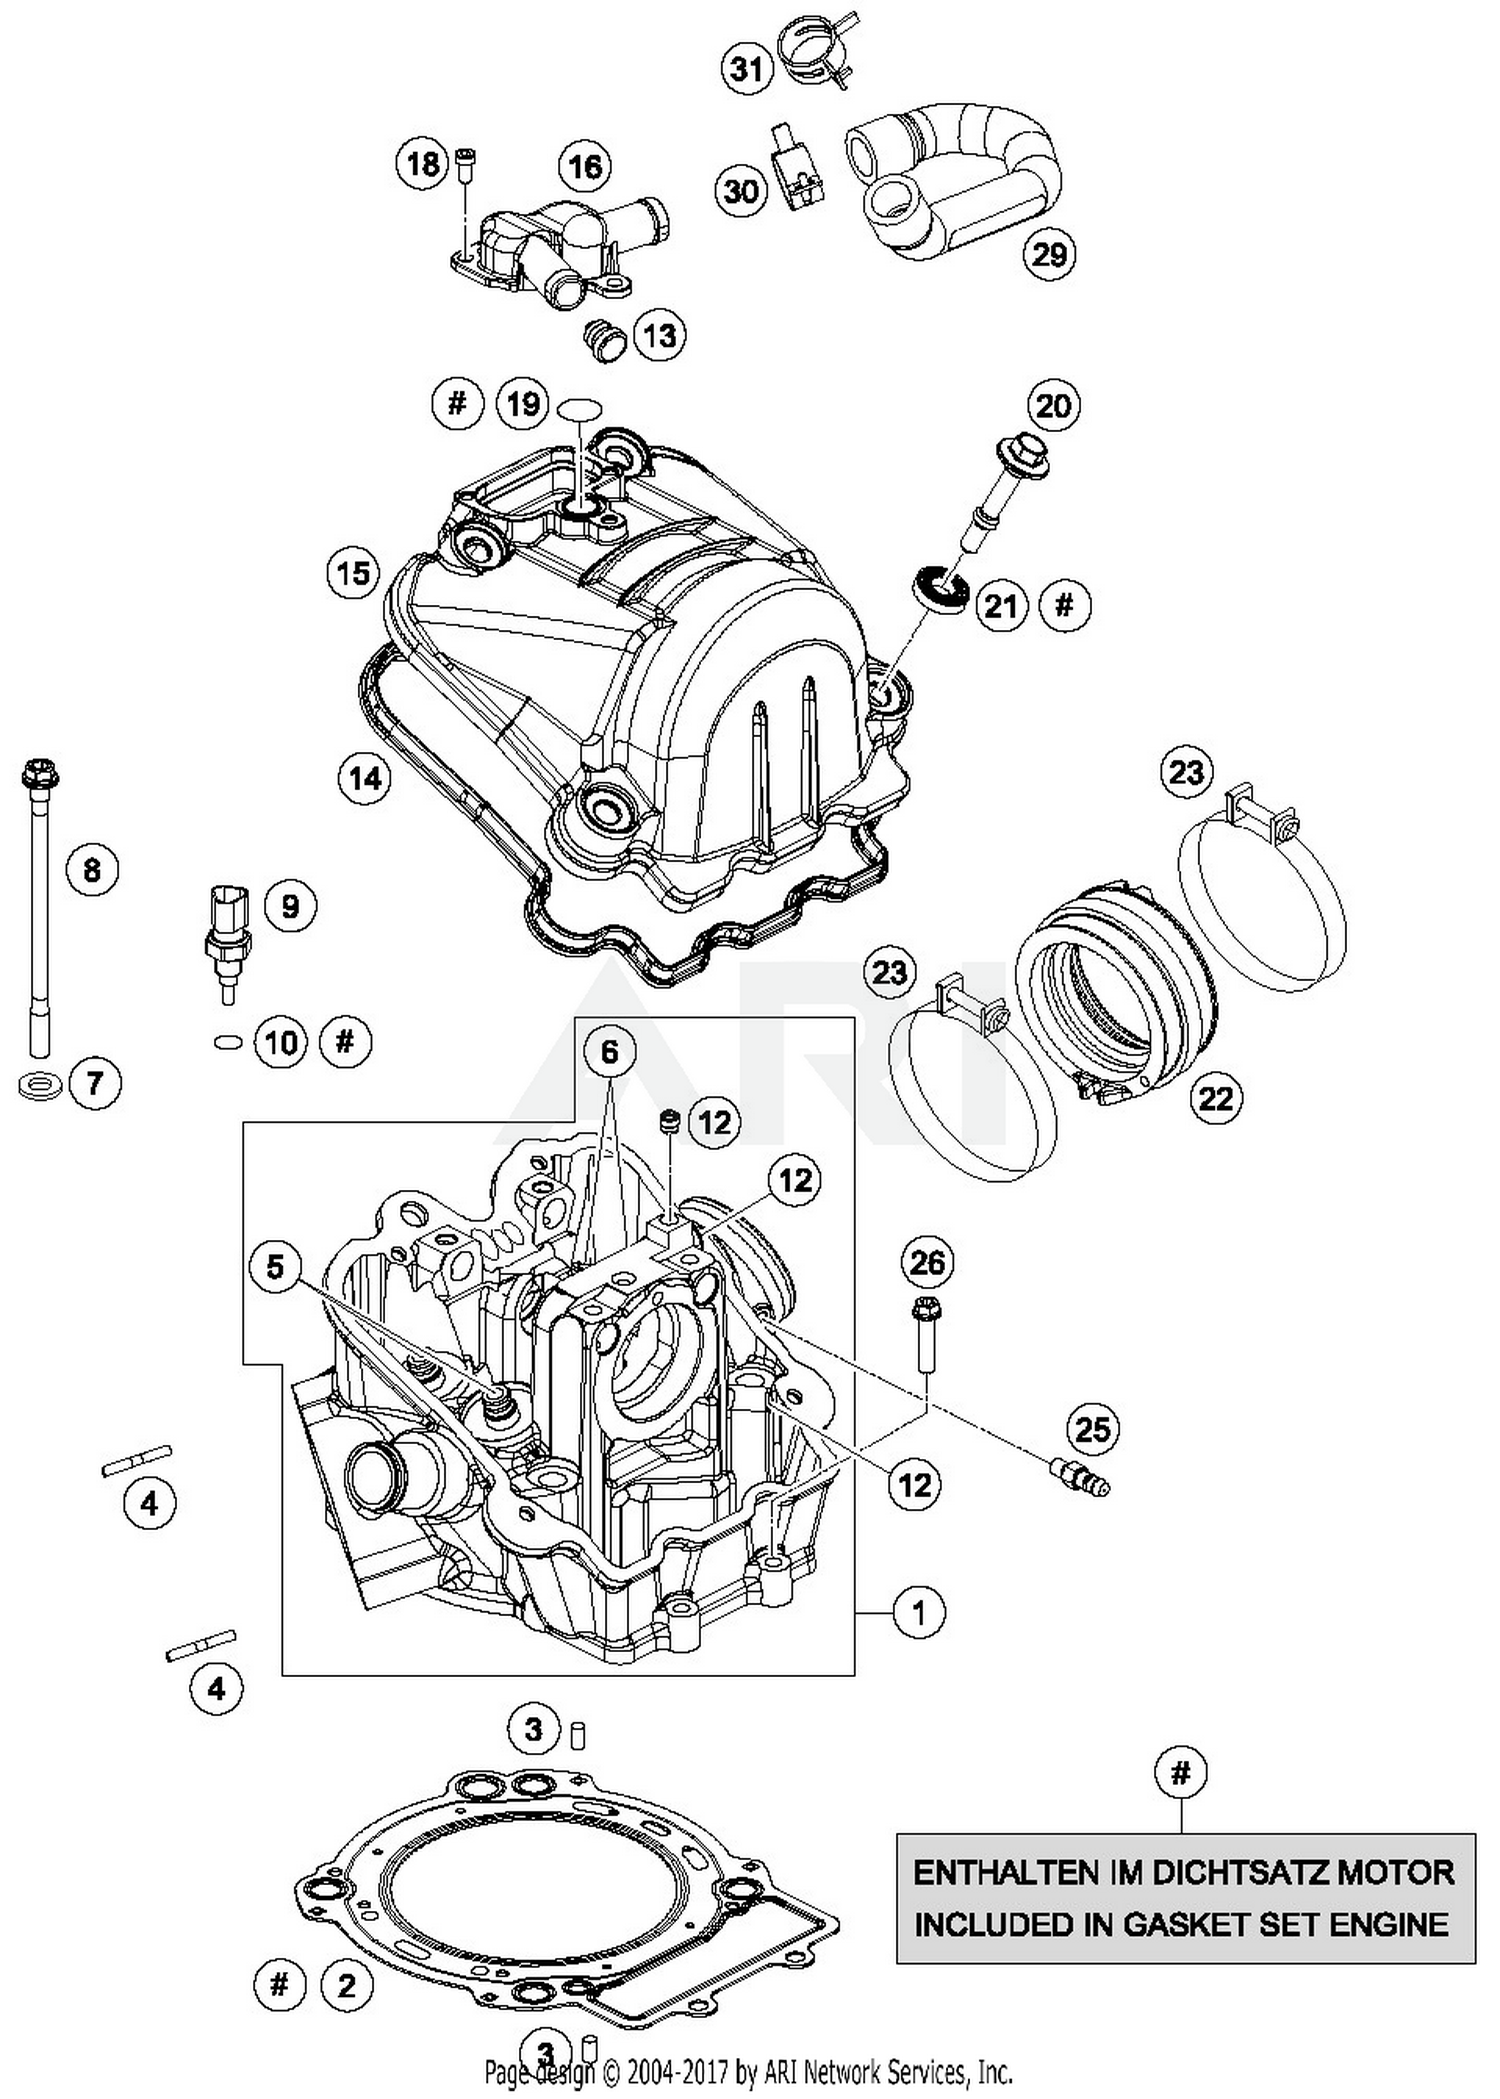 Ktm Engine Diagrams Wiring Library 250 Diagram Part 18 Quantity Required 3